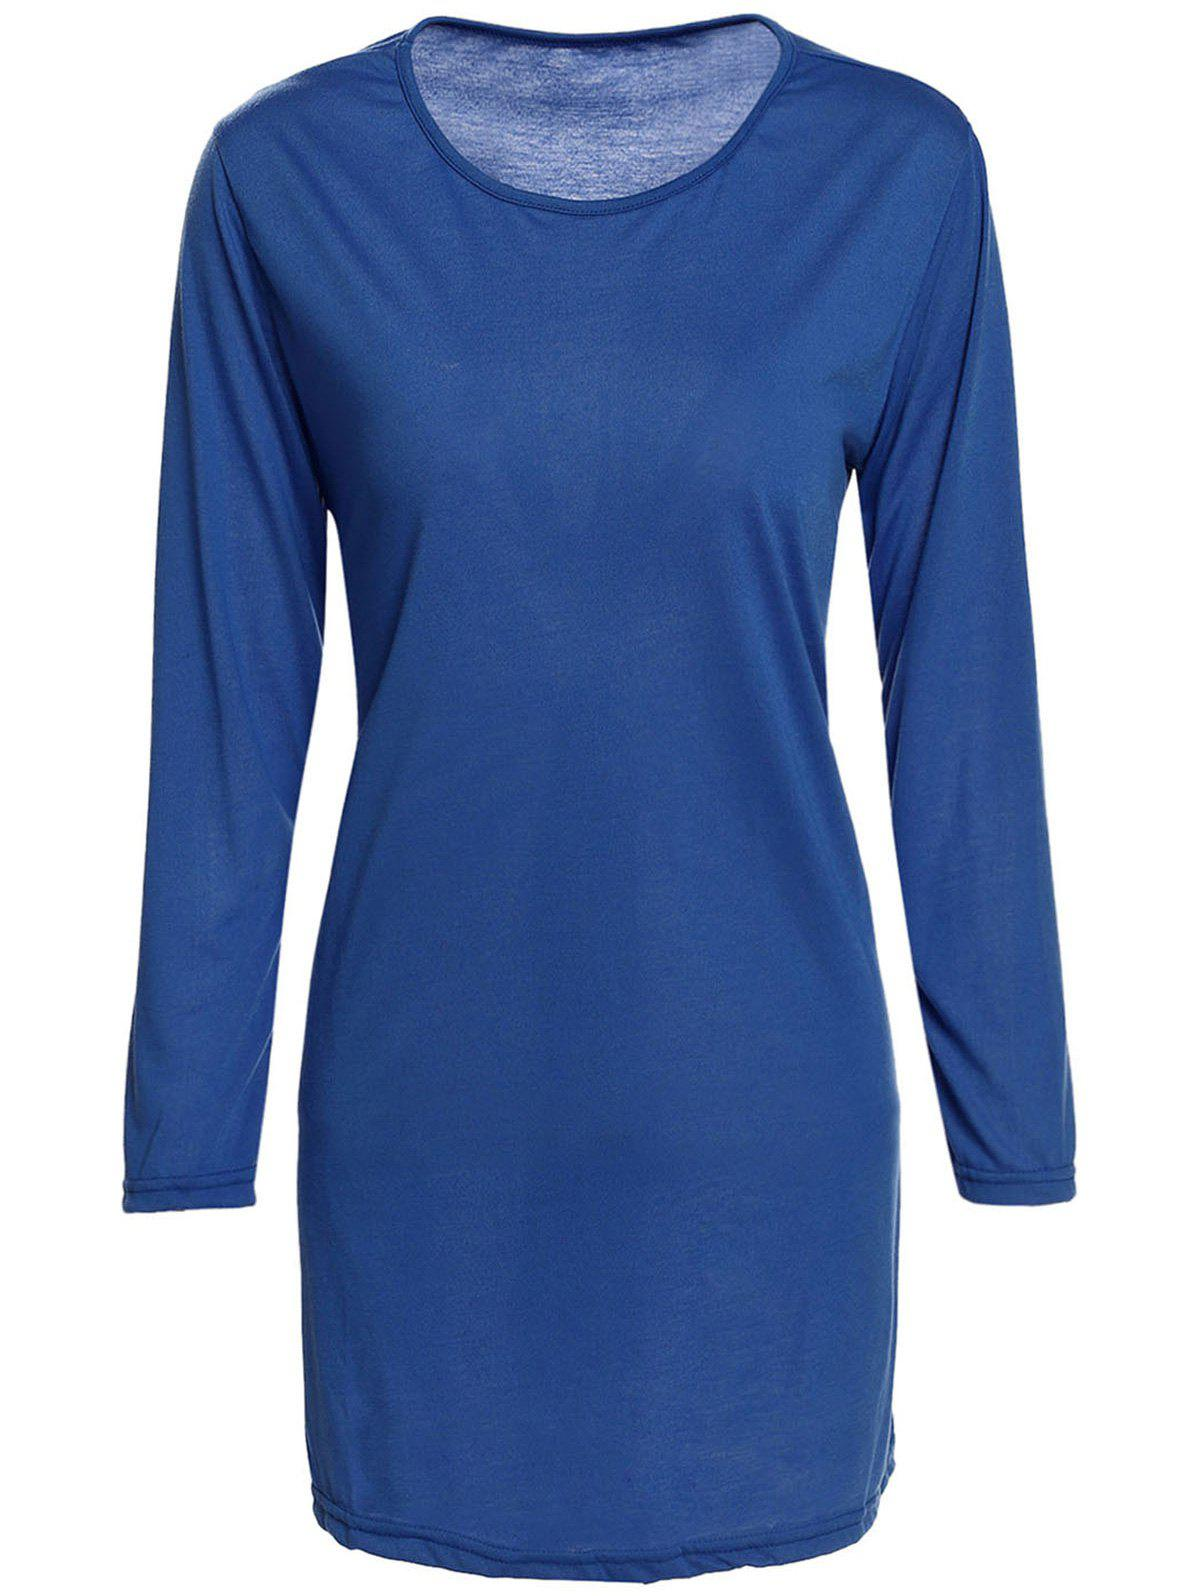 Fancy Brief Style Round Collar 3/4 Sleeve Solid Color Loose-Fitting Women's Dress